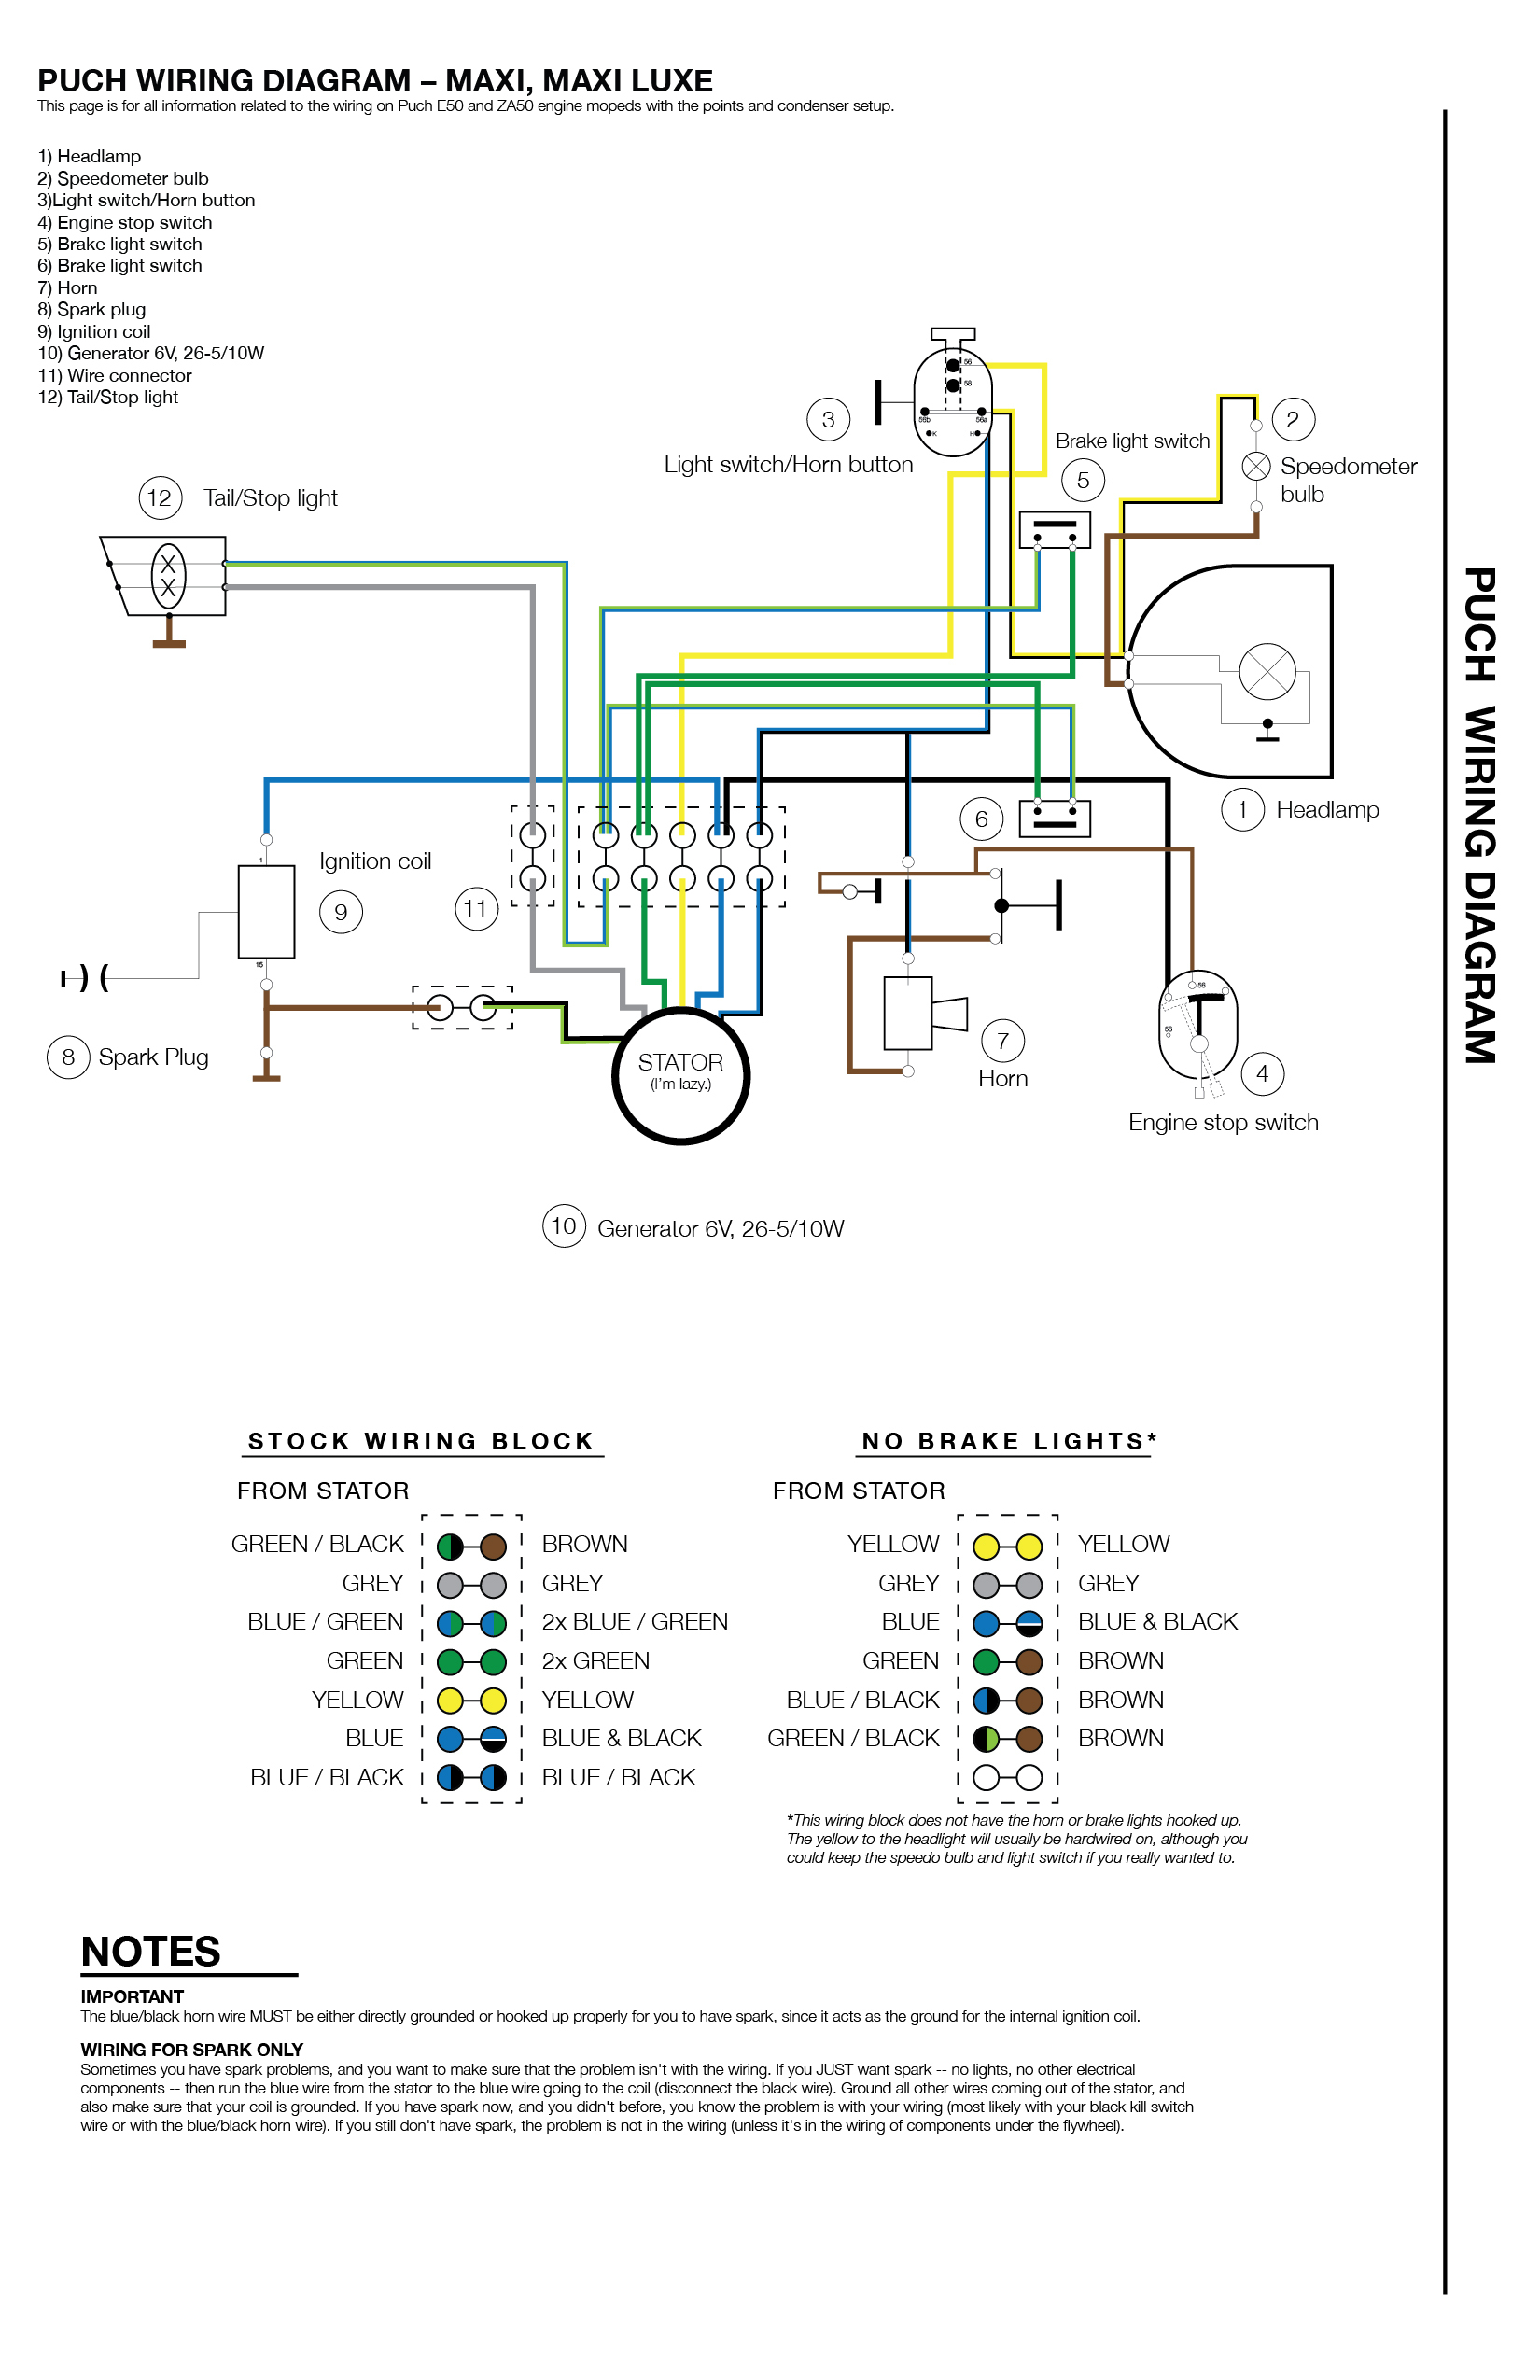 Puch Wiring - Moped Wiki - Brake Lights Wiring Diagram